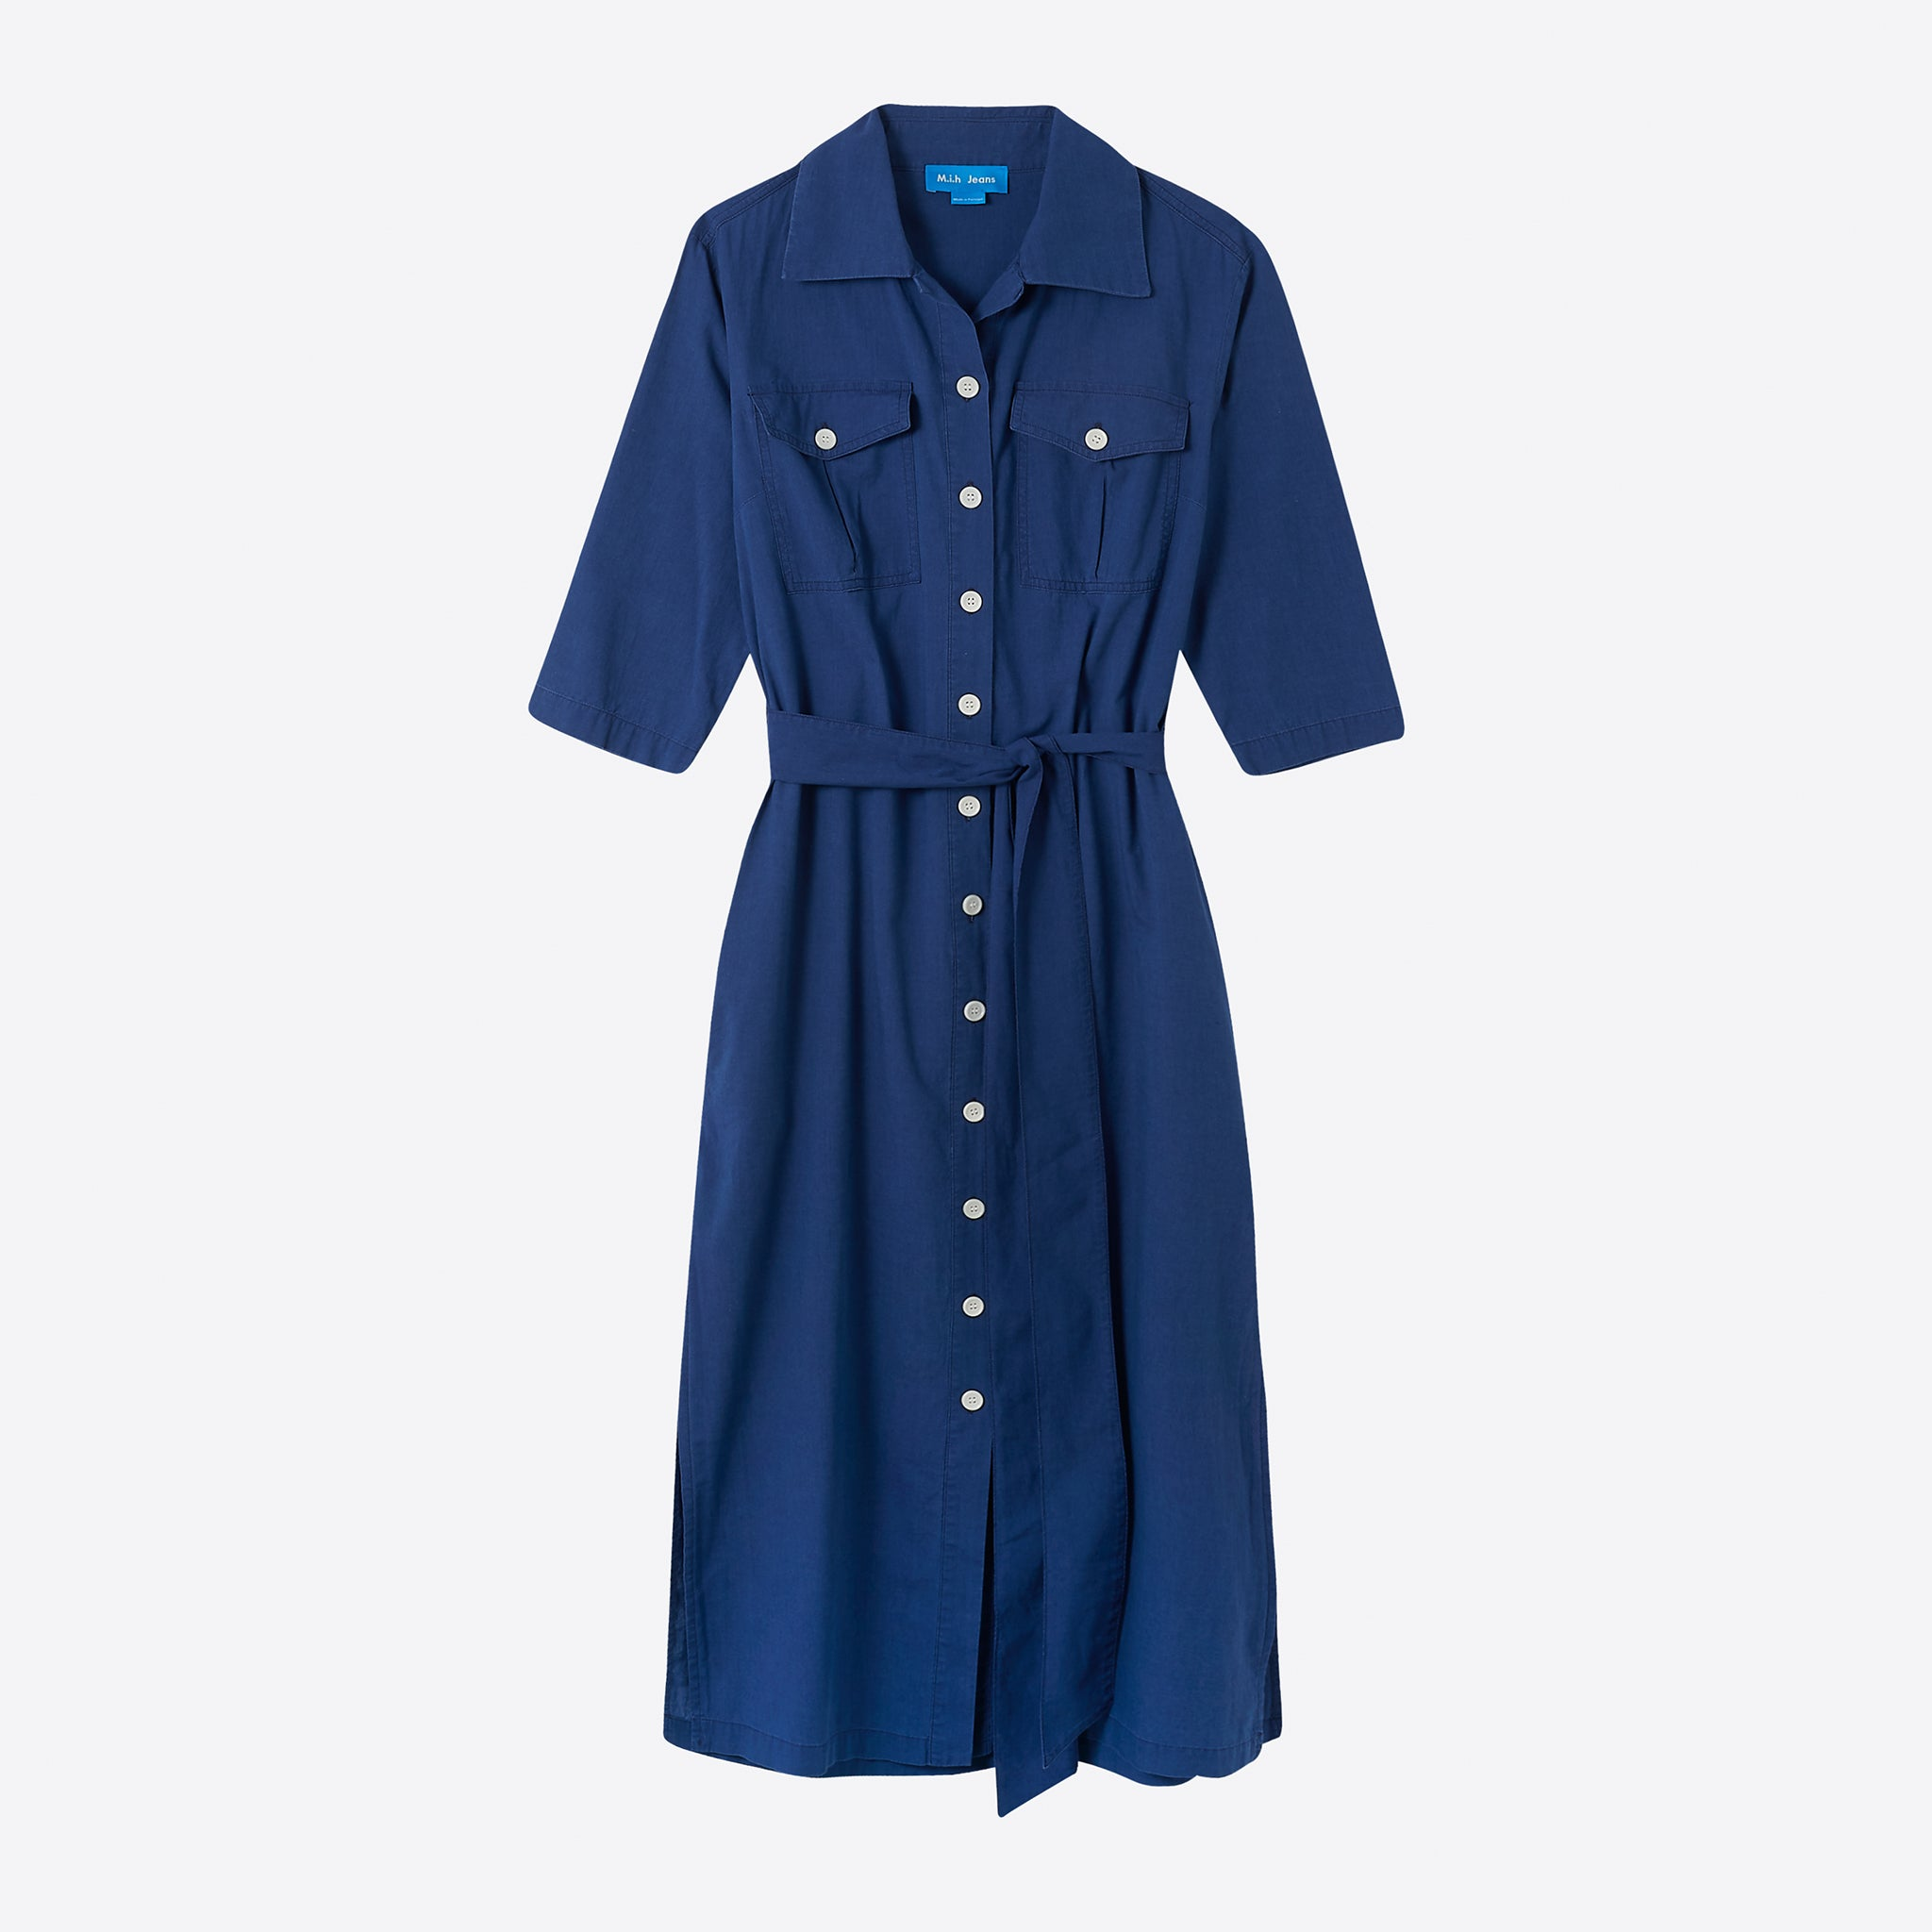 M.i.h Jeans Elise Dress in Blue Chambray